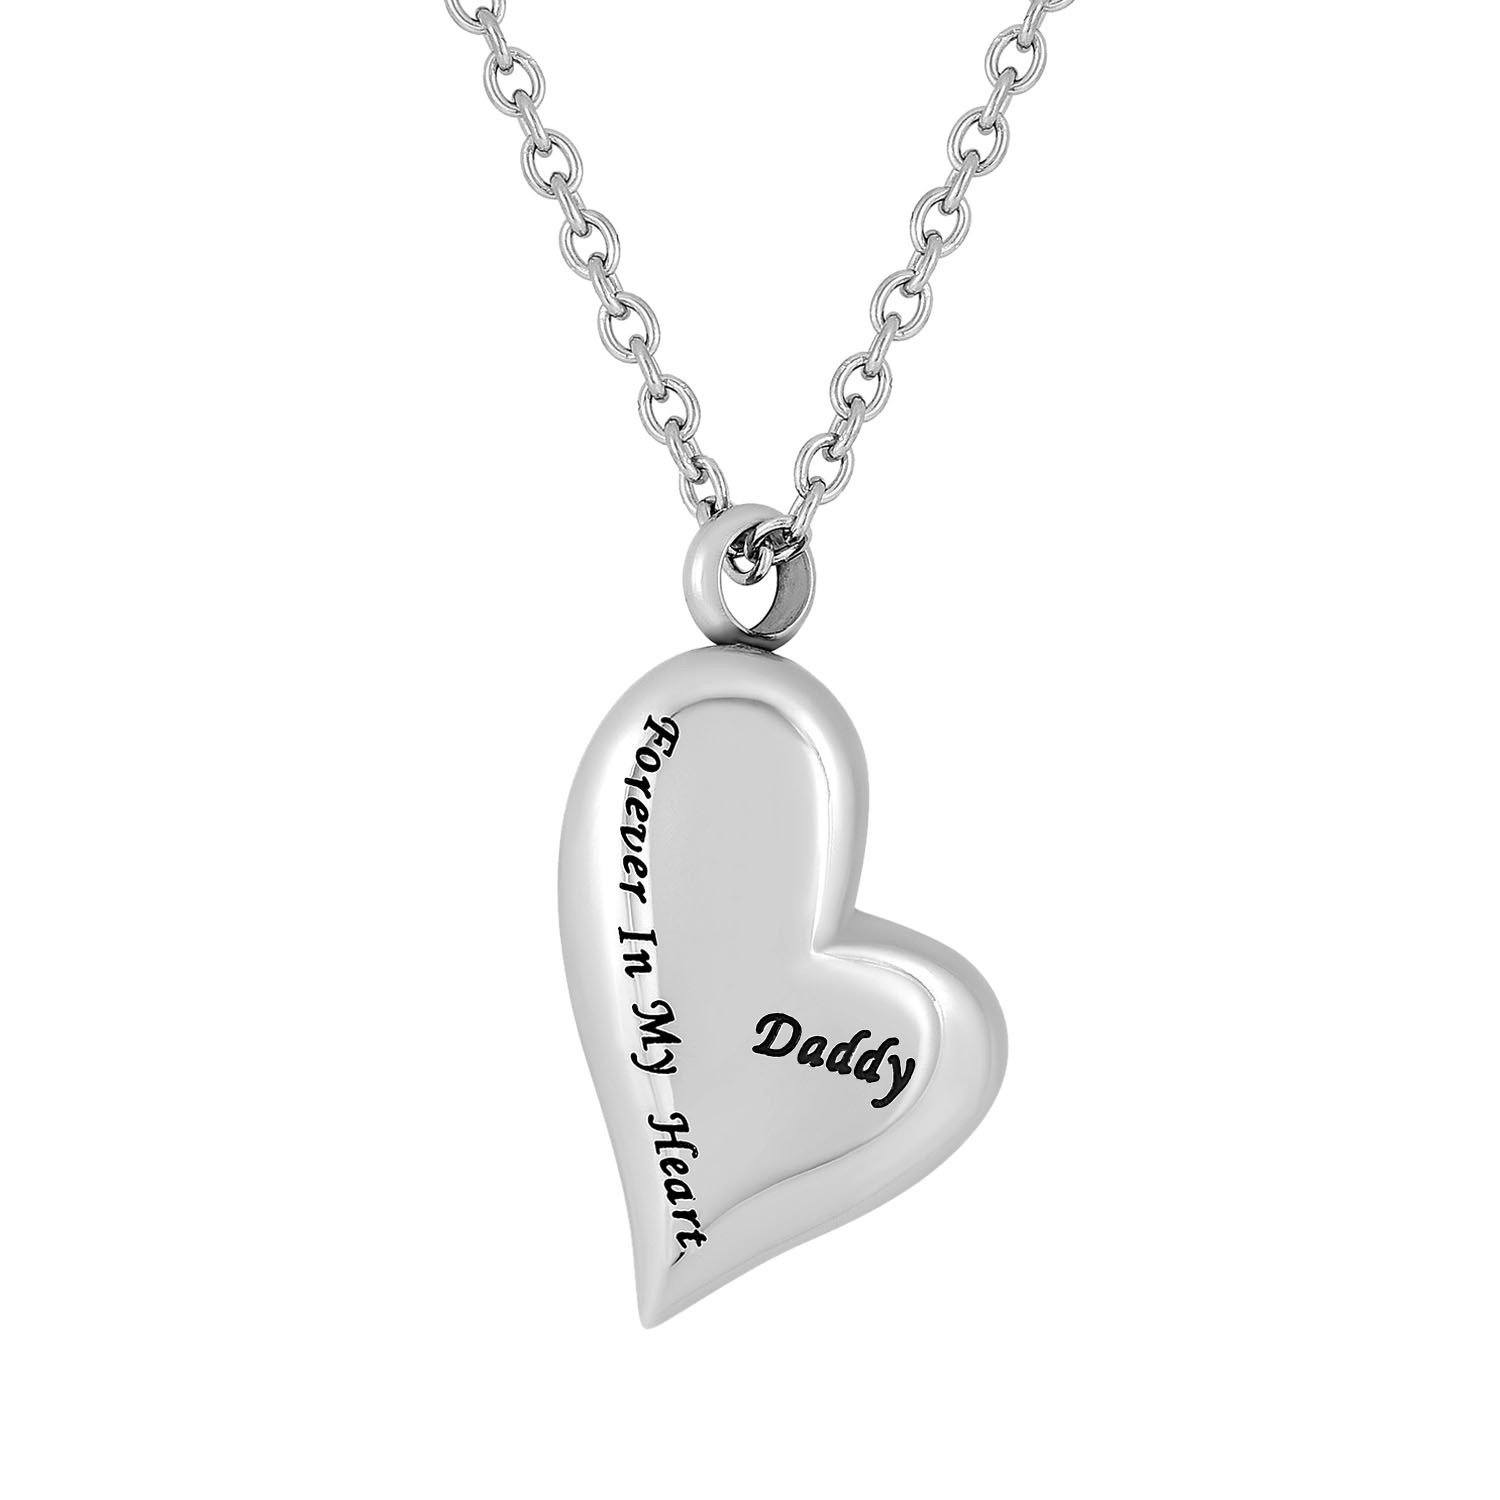 Cremation Jewelry Necklace for Ashes - Daddy Forever In My Heart